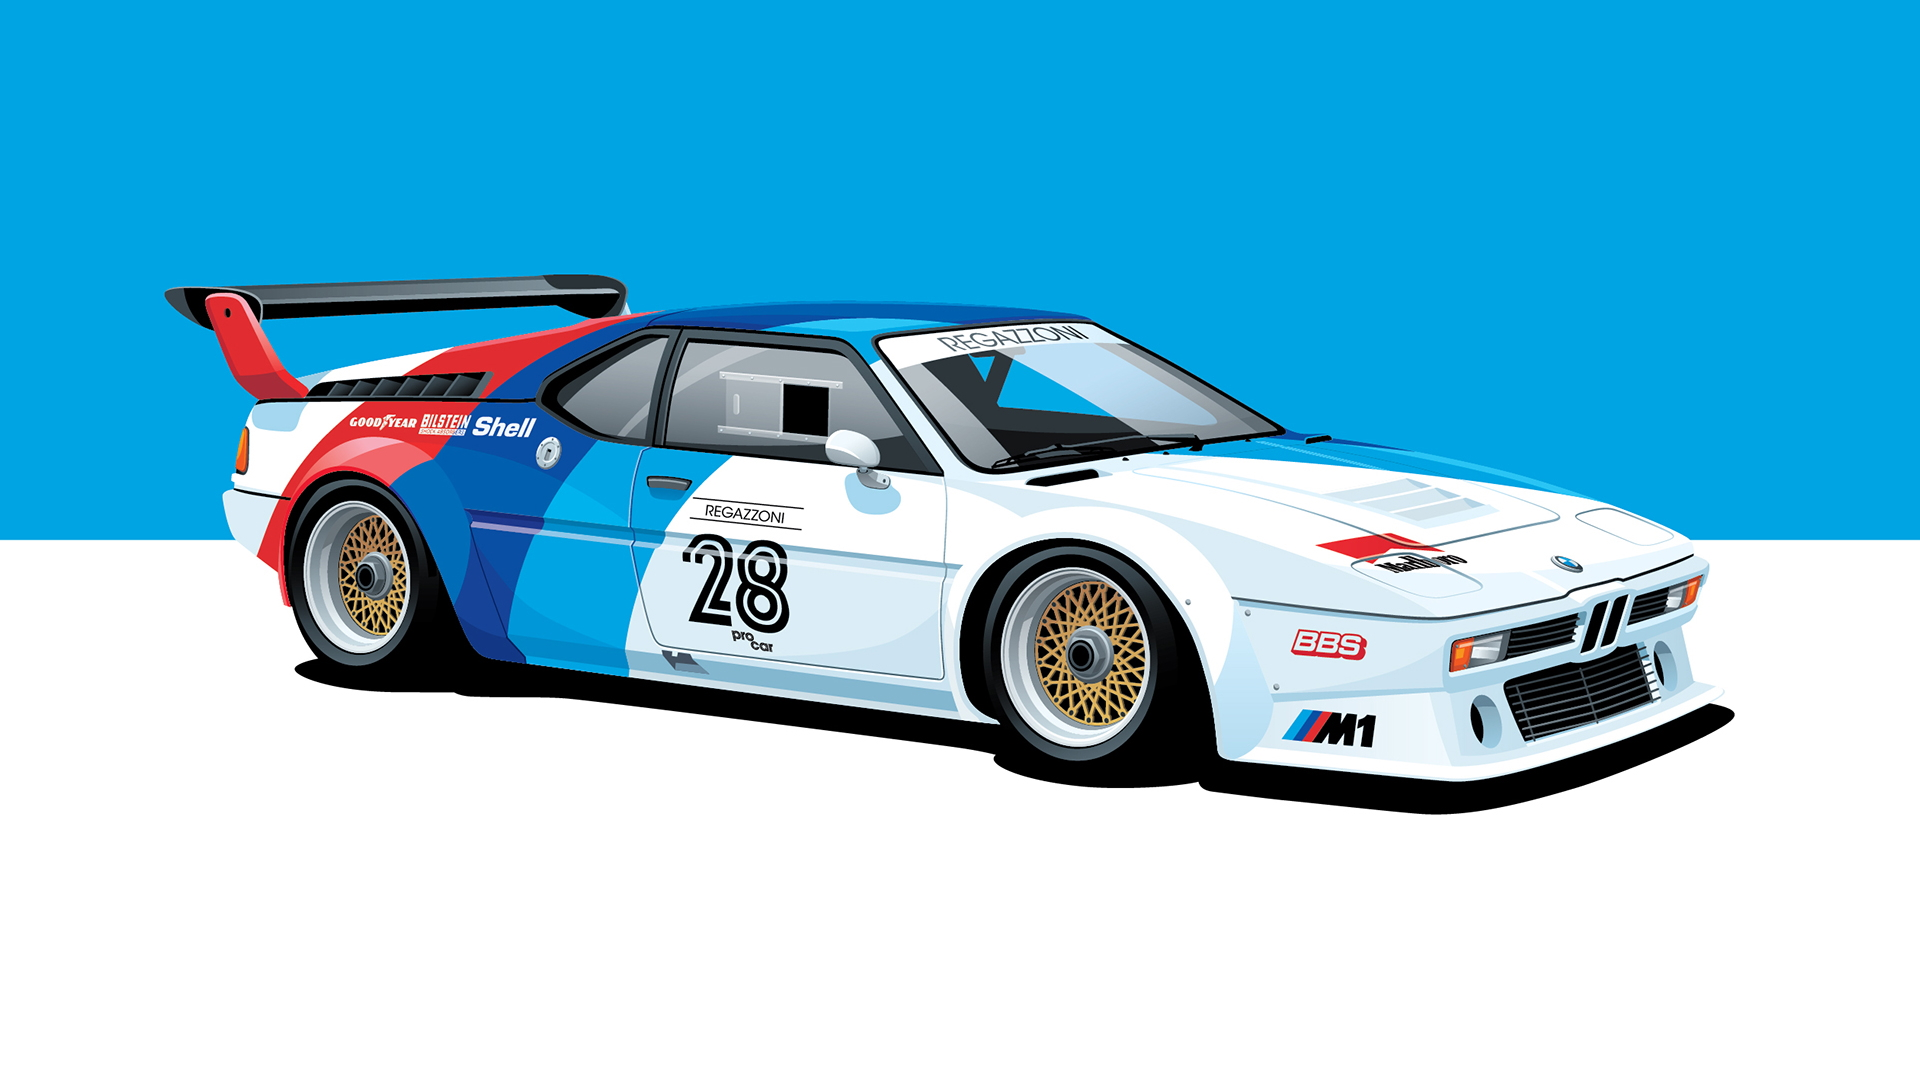 General 1920x1080 bmw m1 Procar race cars car poster pop-up headlights